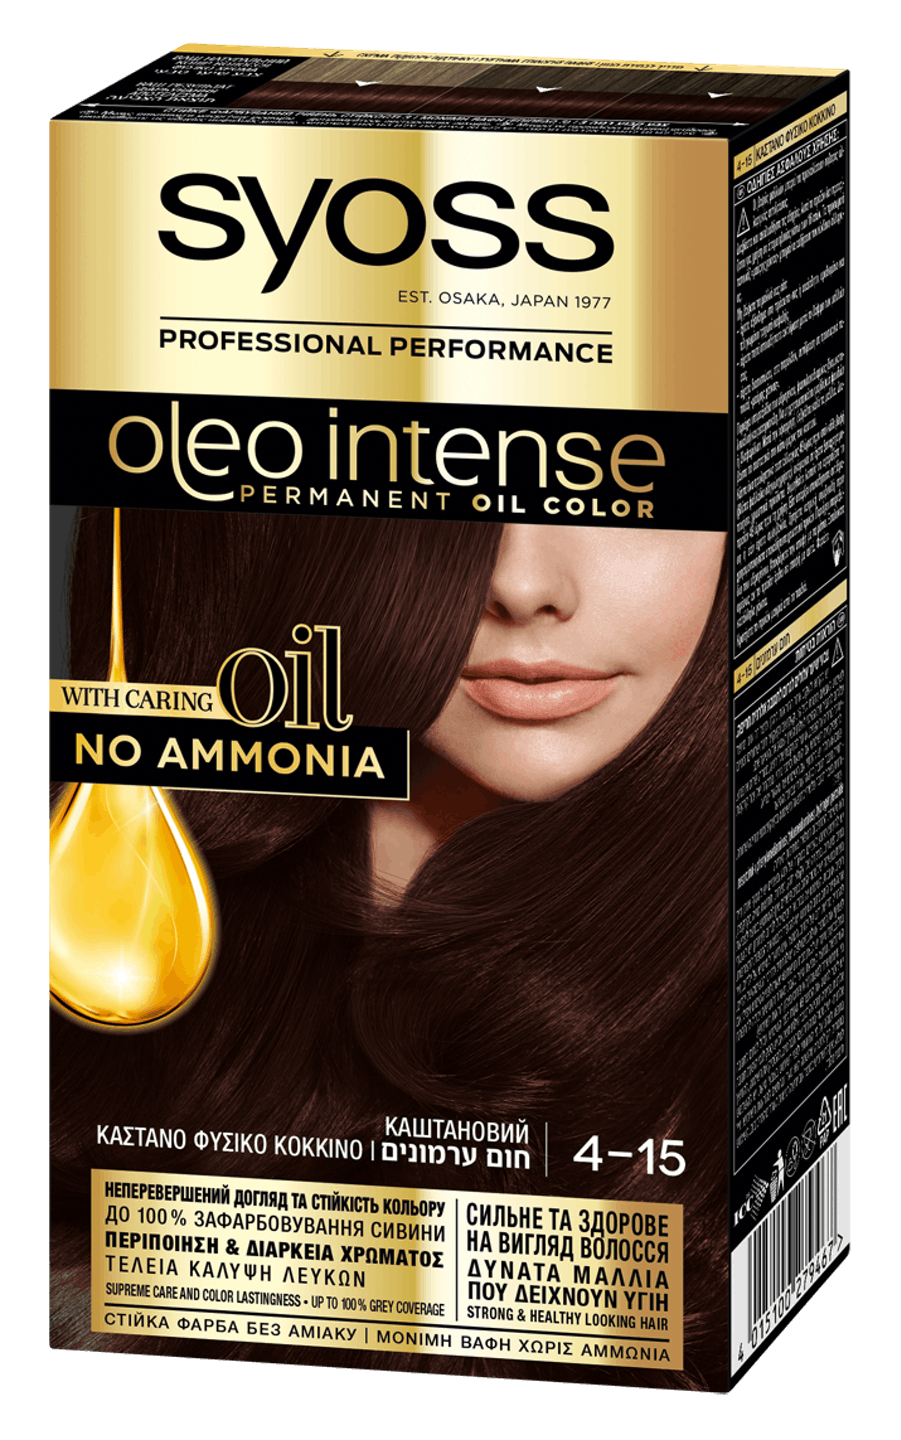 Syoss Oleo Intense Каштановий 4-15 shot pack